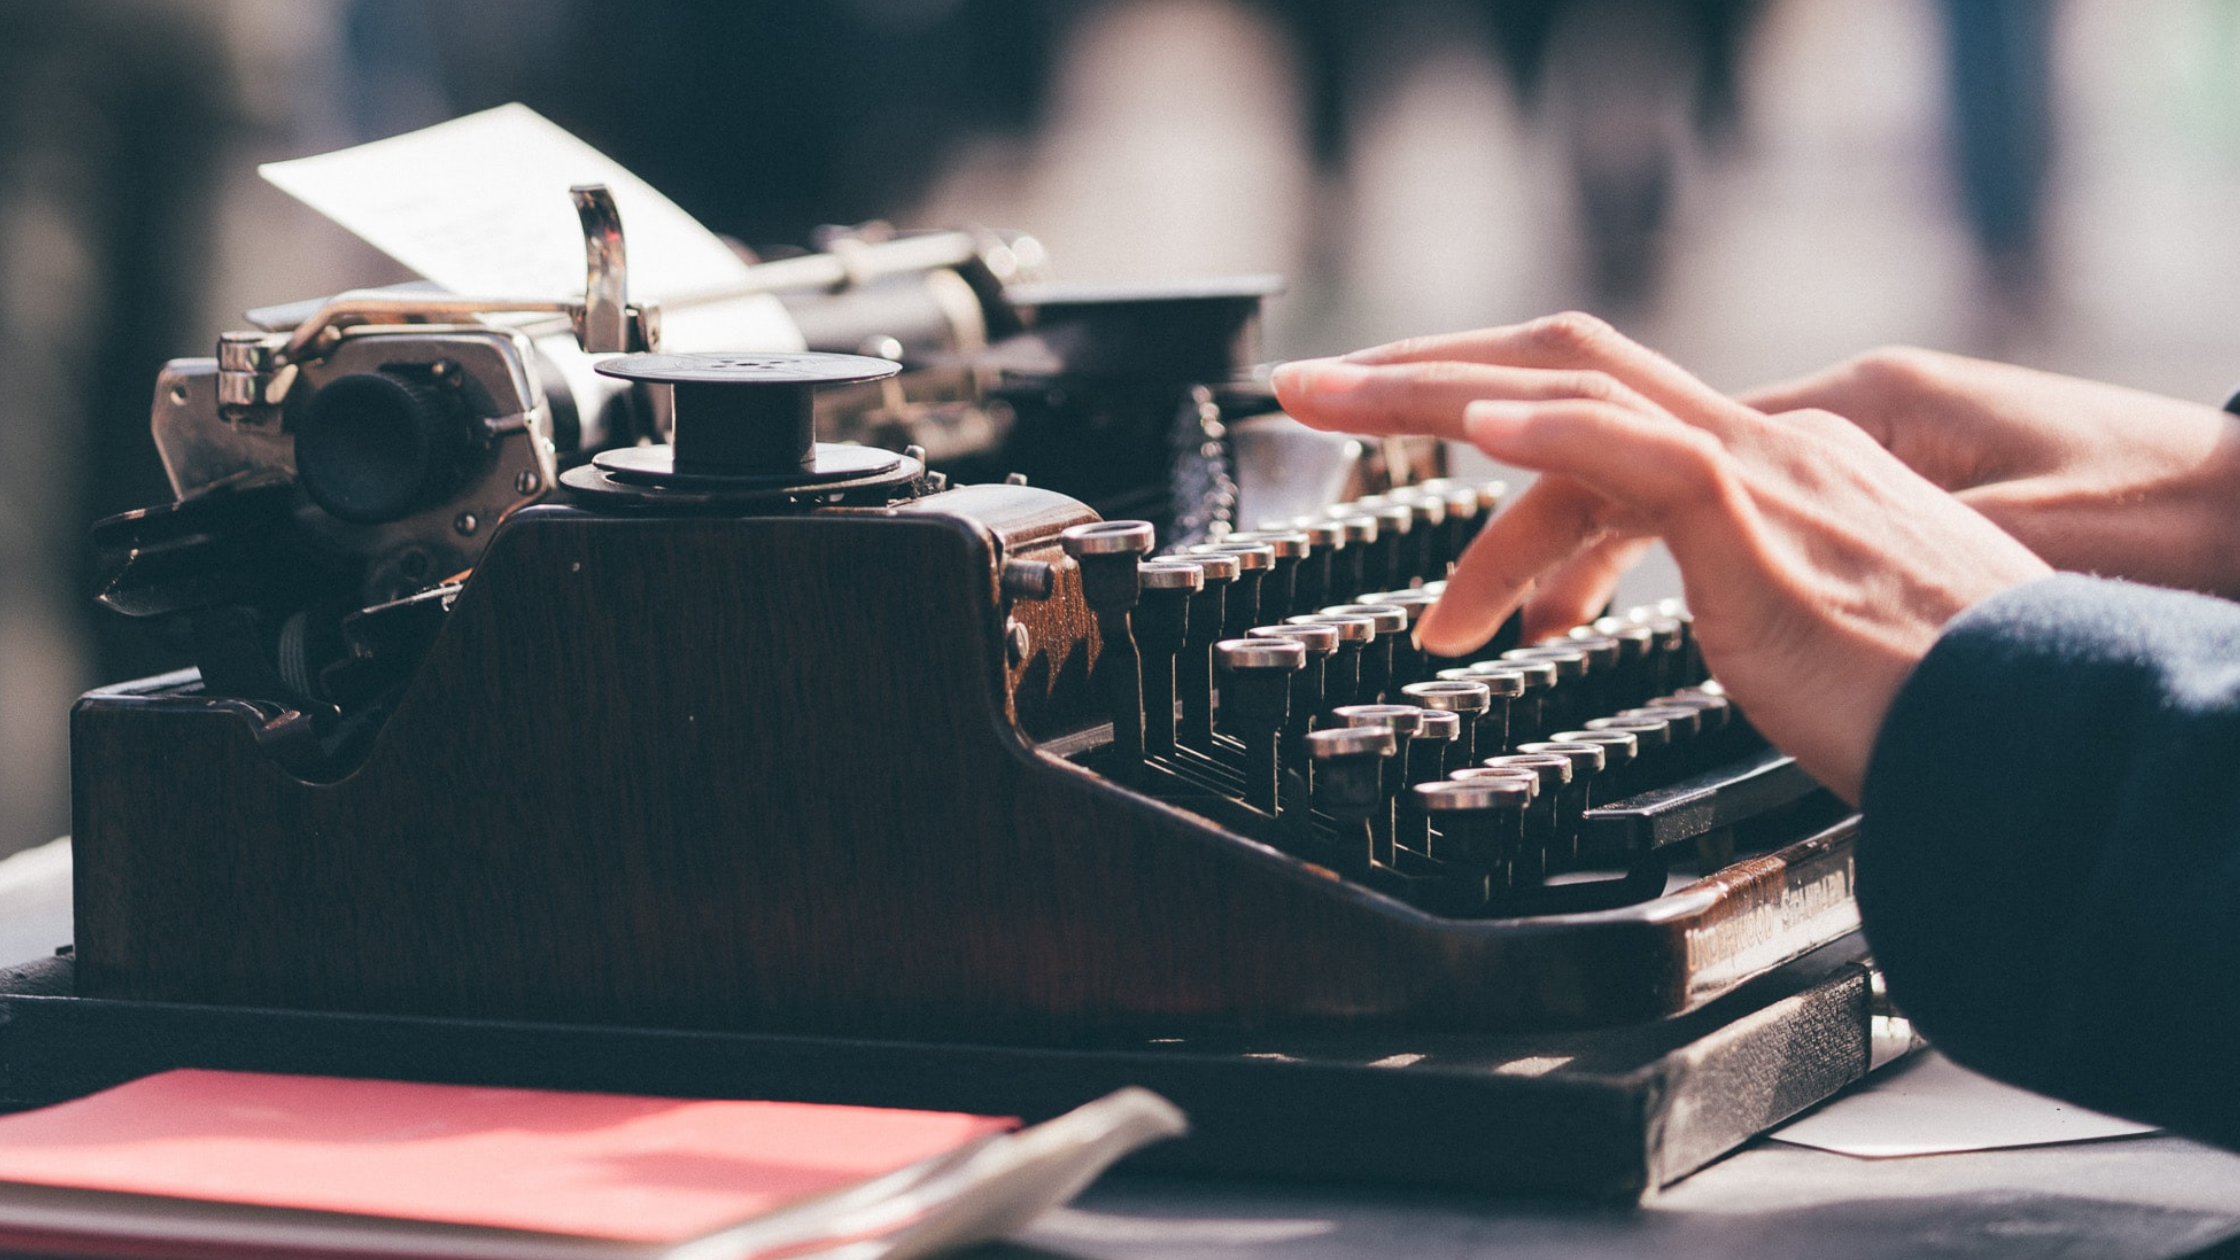 fingers poised to write over the keyboard of a black typewriter